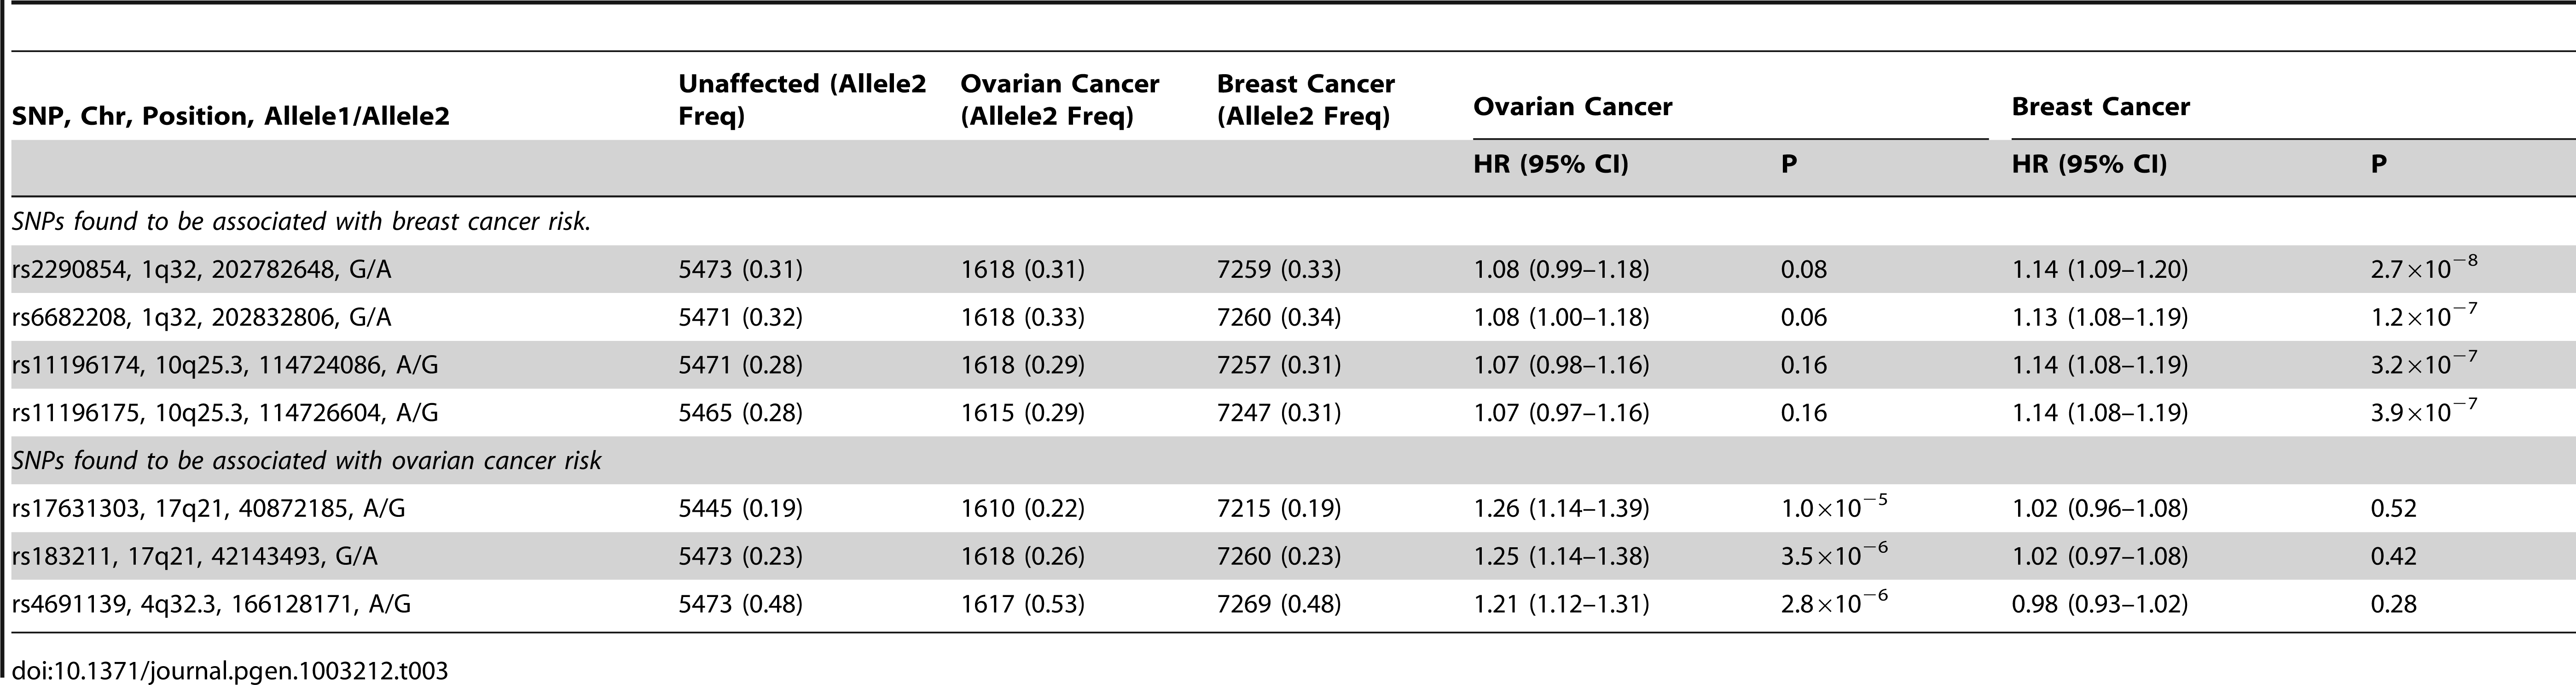 Analysis of associations with breast and ovarian cancer risk simultaneously (competing risks analysis) for SNPs found to be associated with breast or ovarian cancer.